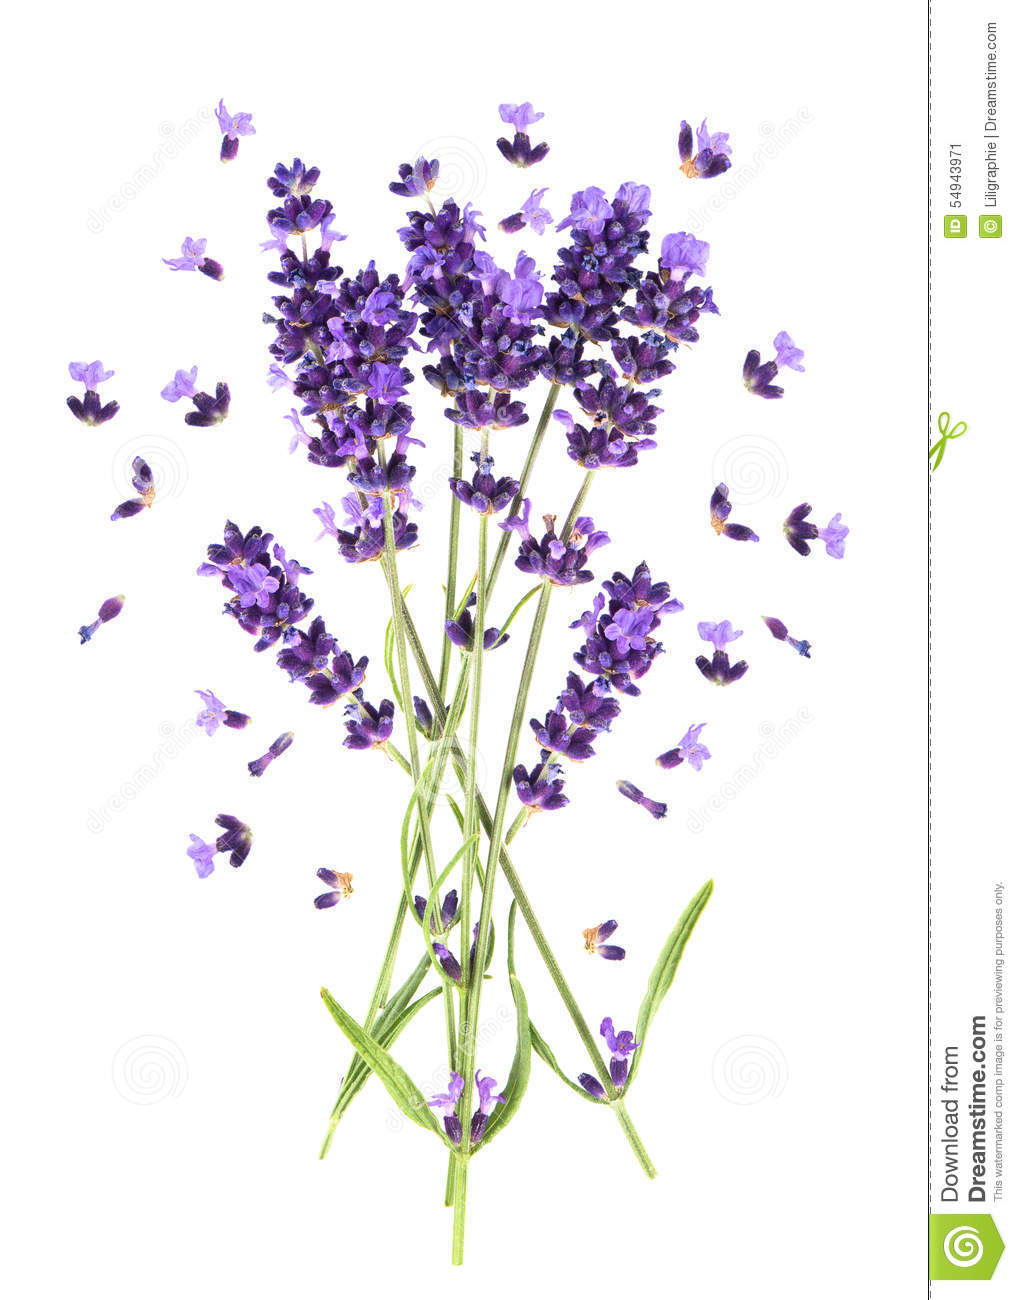 Lavender flowers on white. Fresh provencal plant